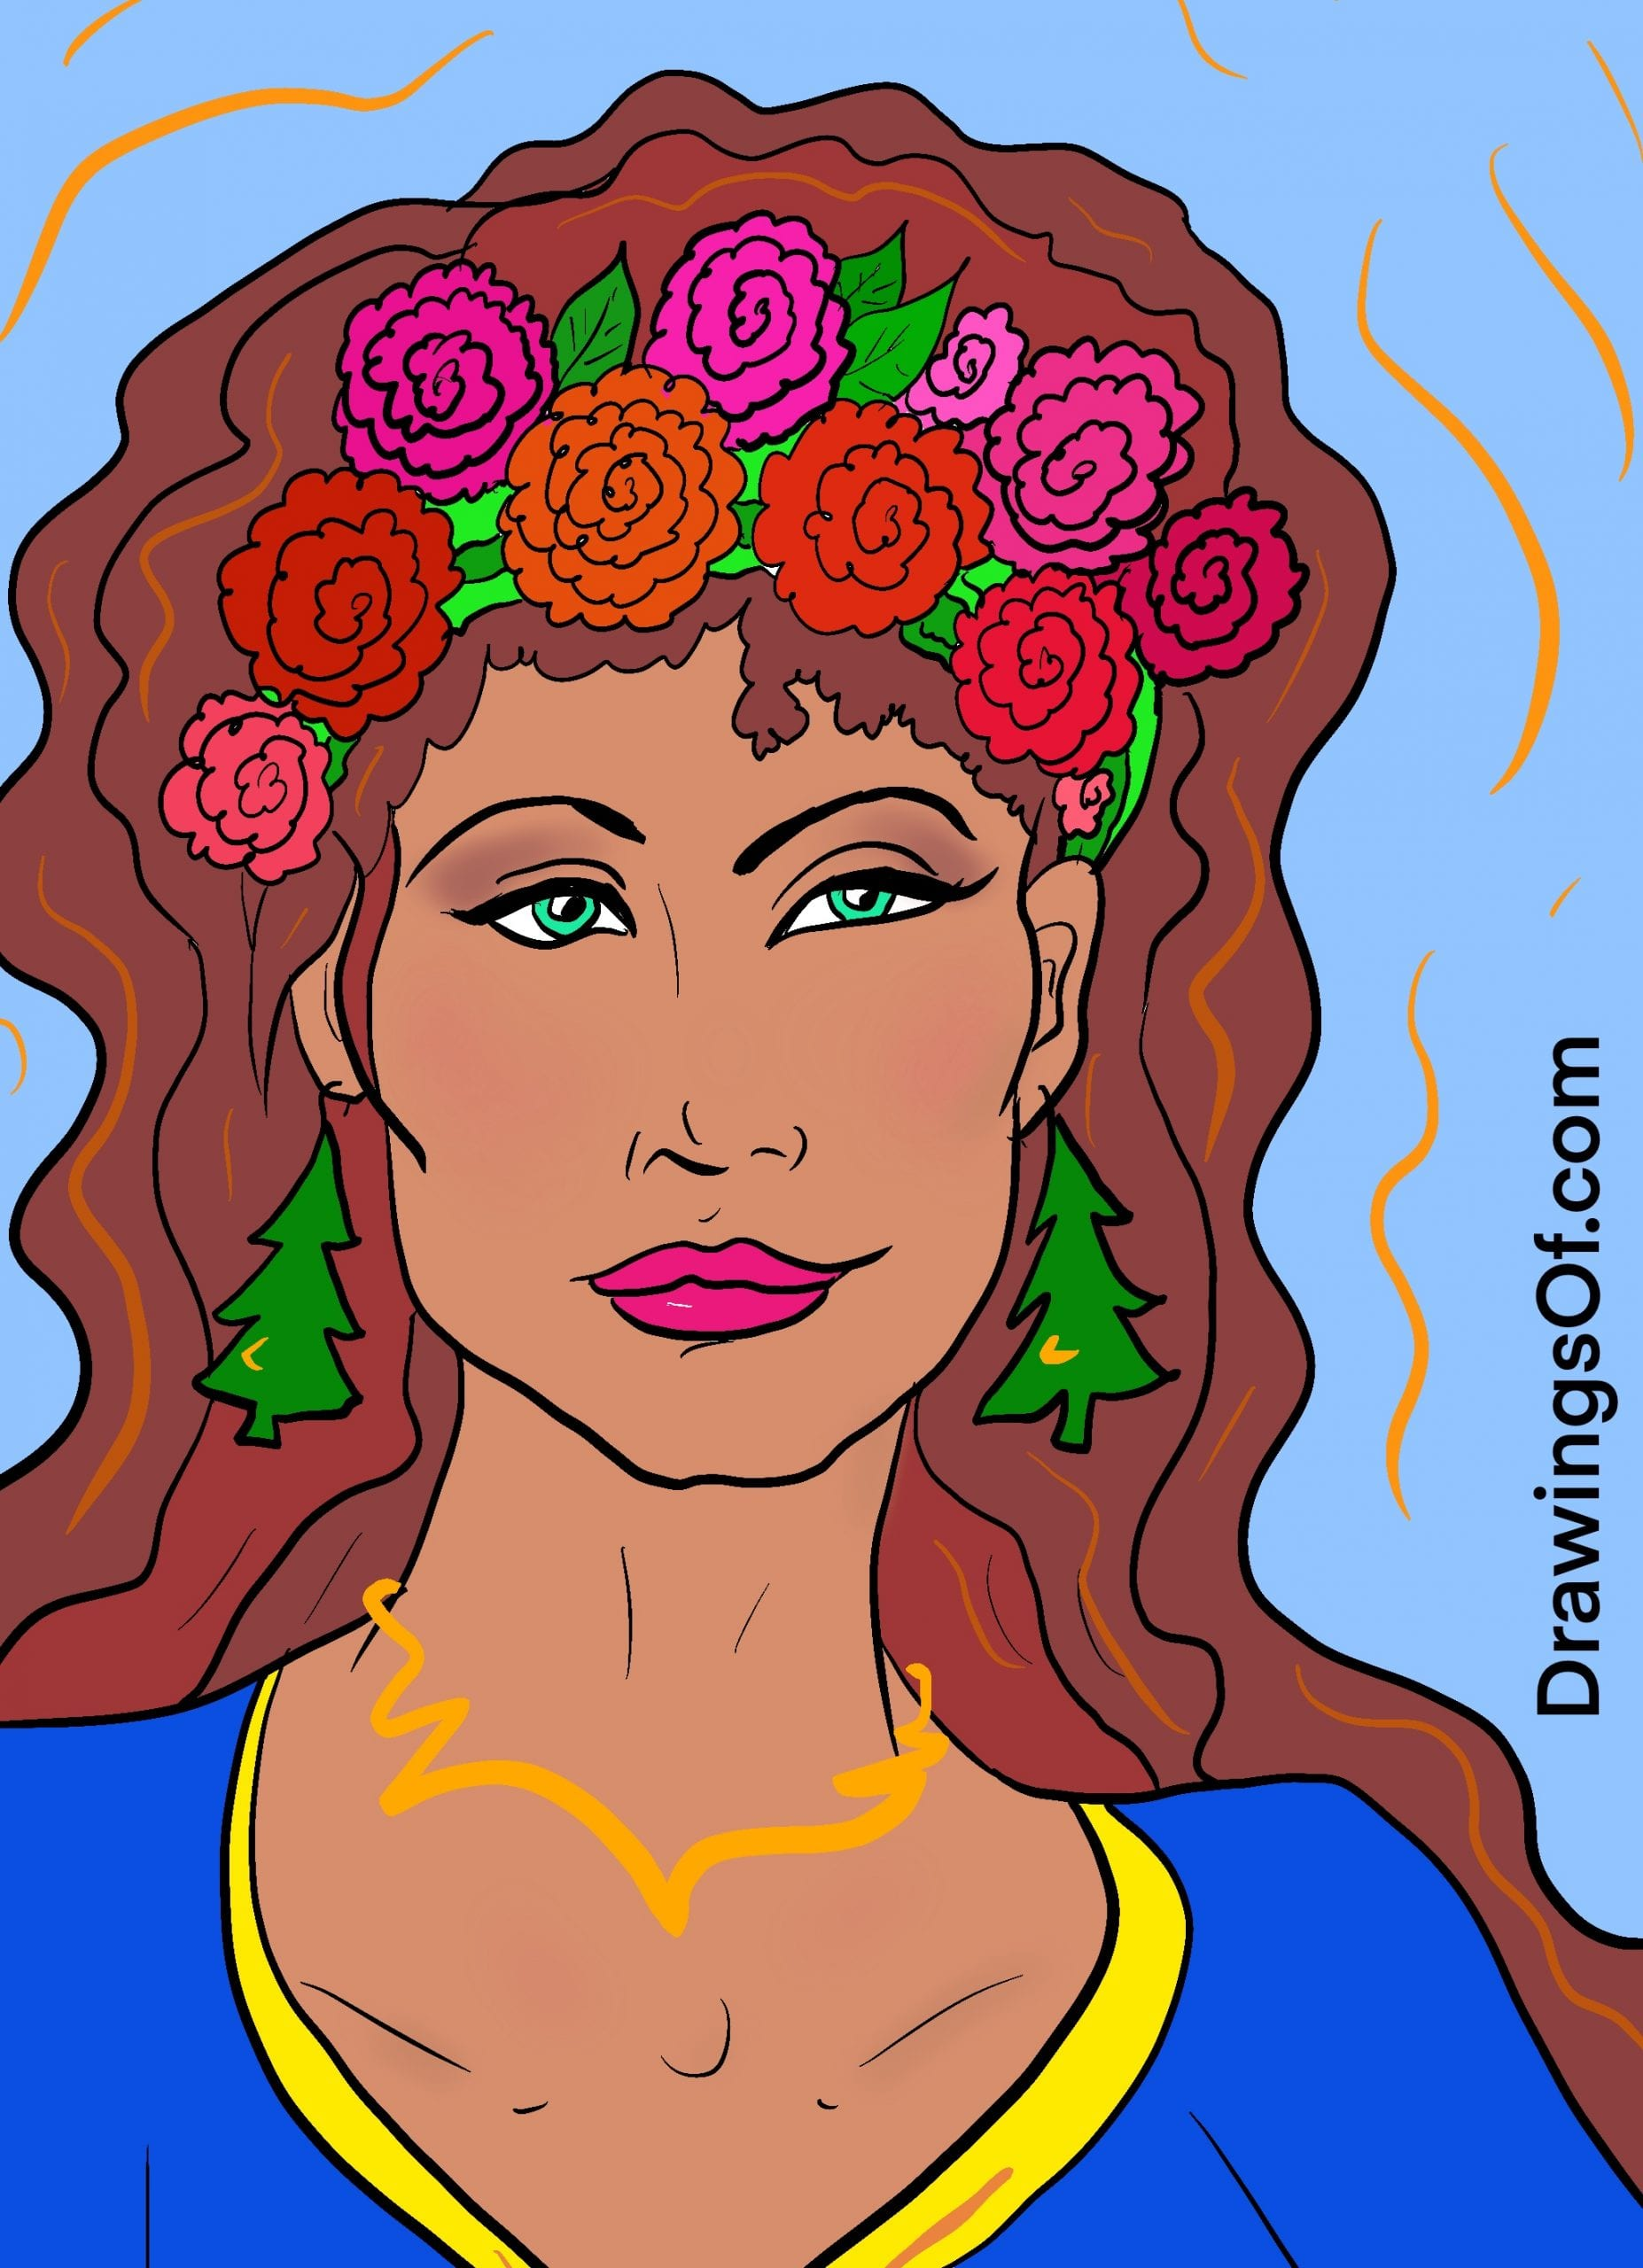 Drawing of beautiful woman with flower crown and Christmas tree earrings